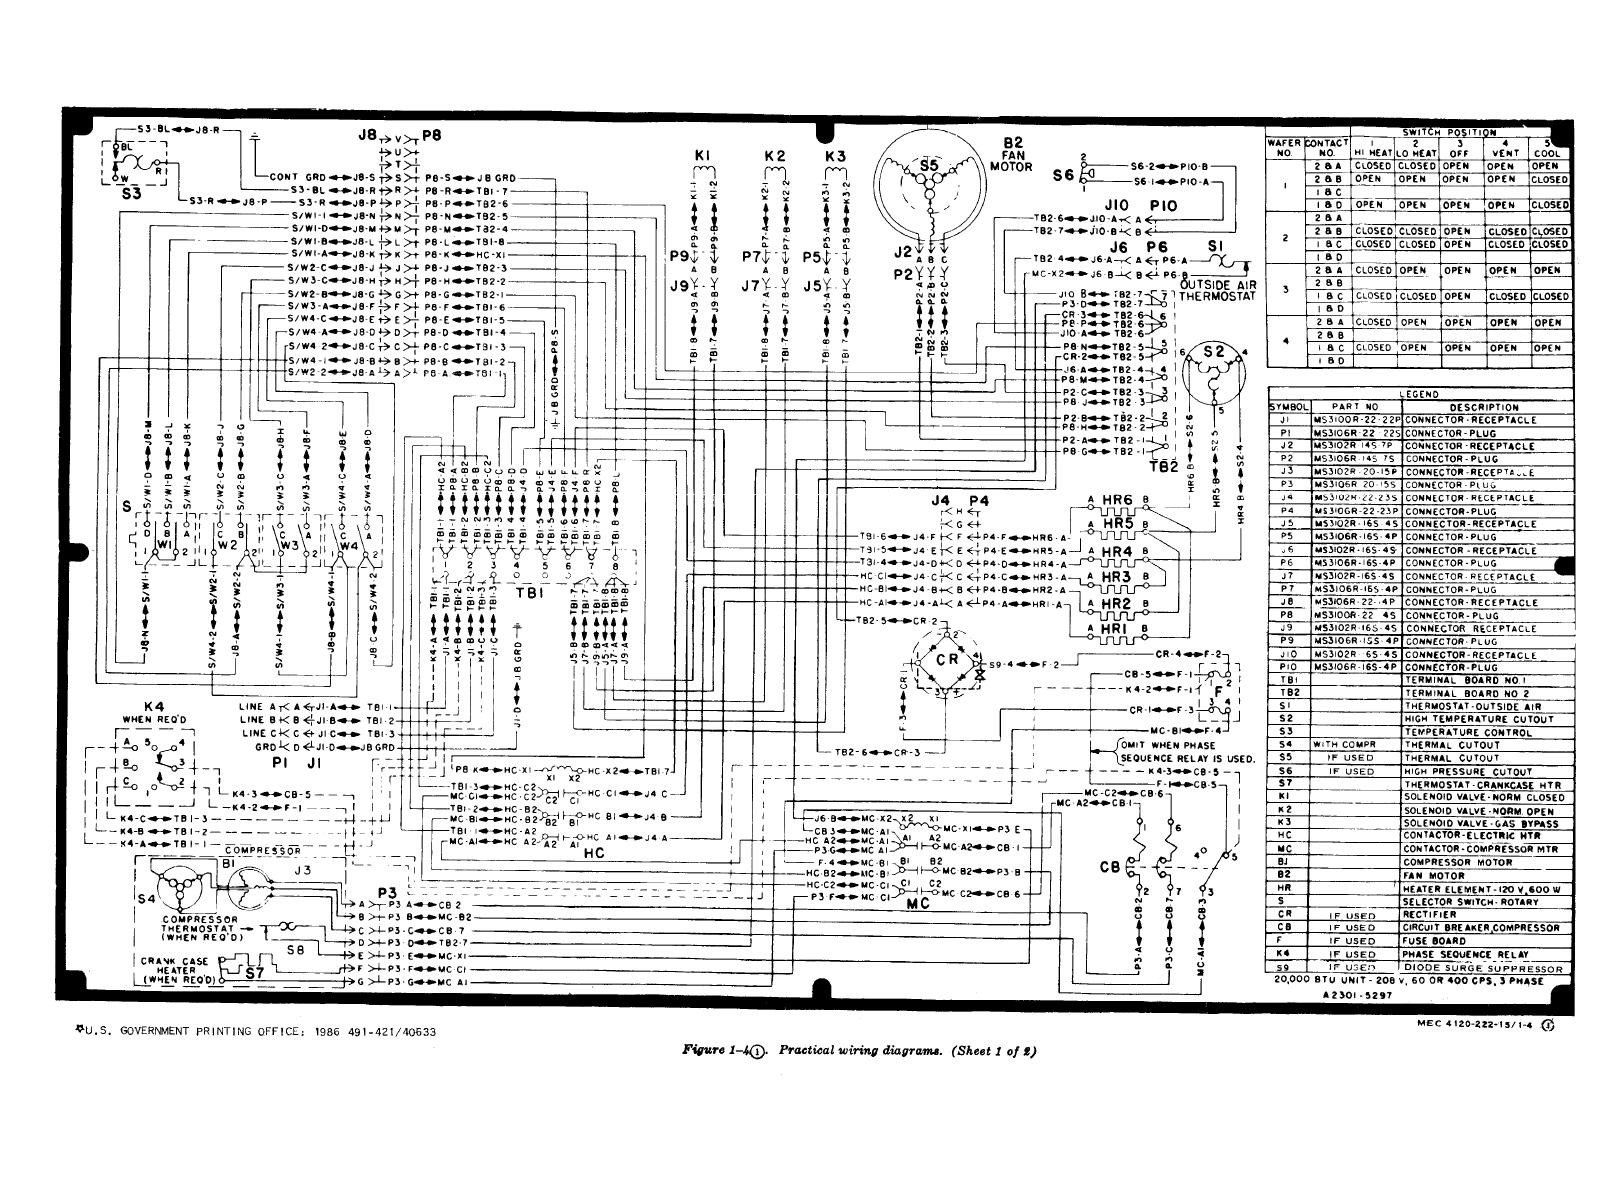 Trane Vfd Wiring Diagram | Wiring Diagrams on